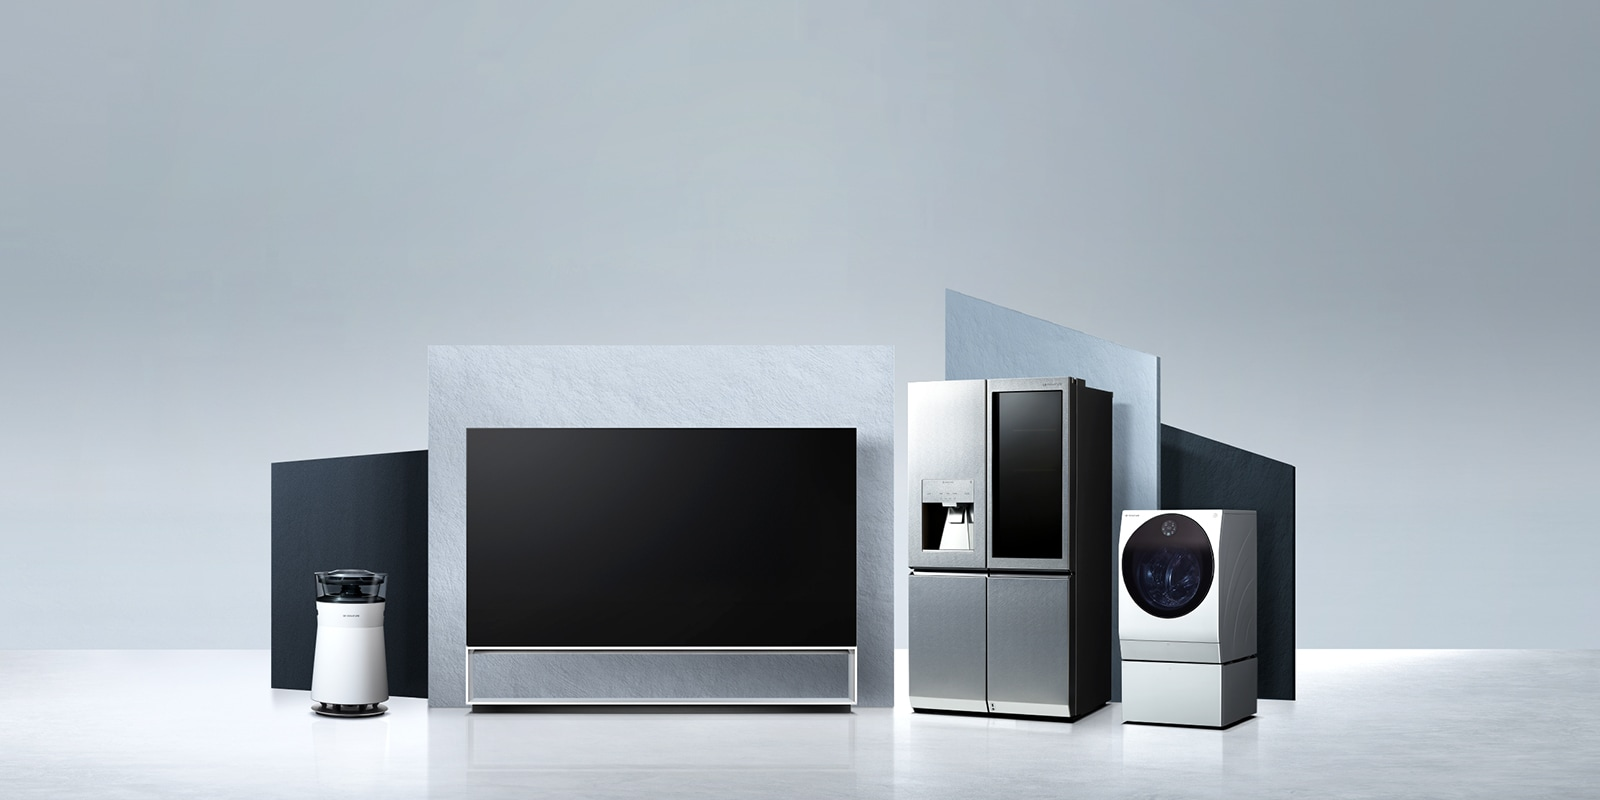 LG SIGNATURE OLED 8K TV, Refrigerator, Washing Machine, and Air Purifier are laid on the virtual space.